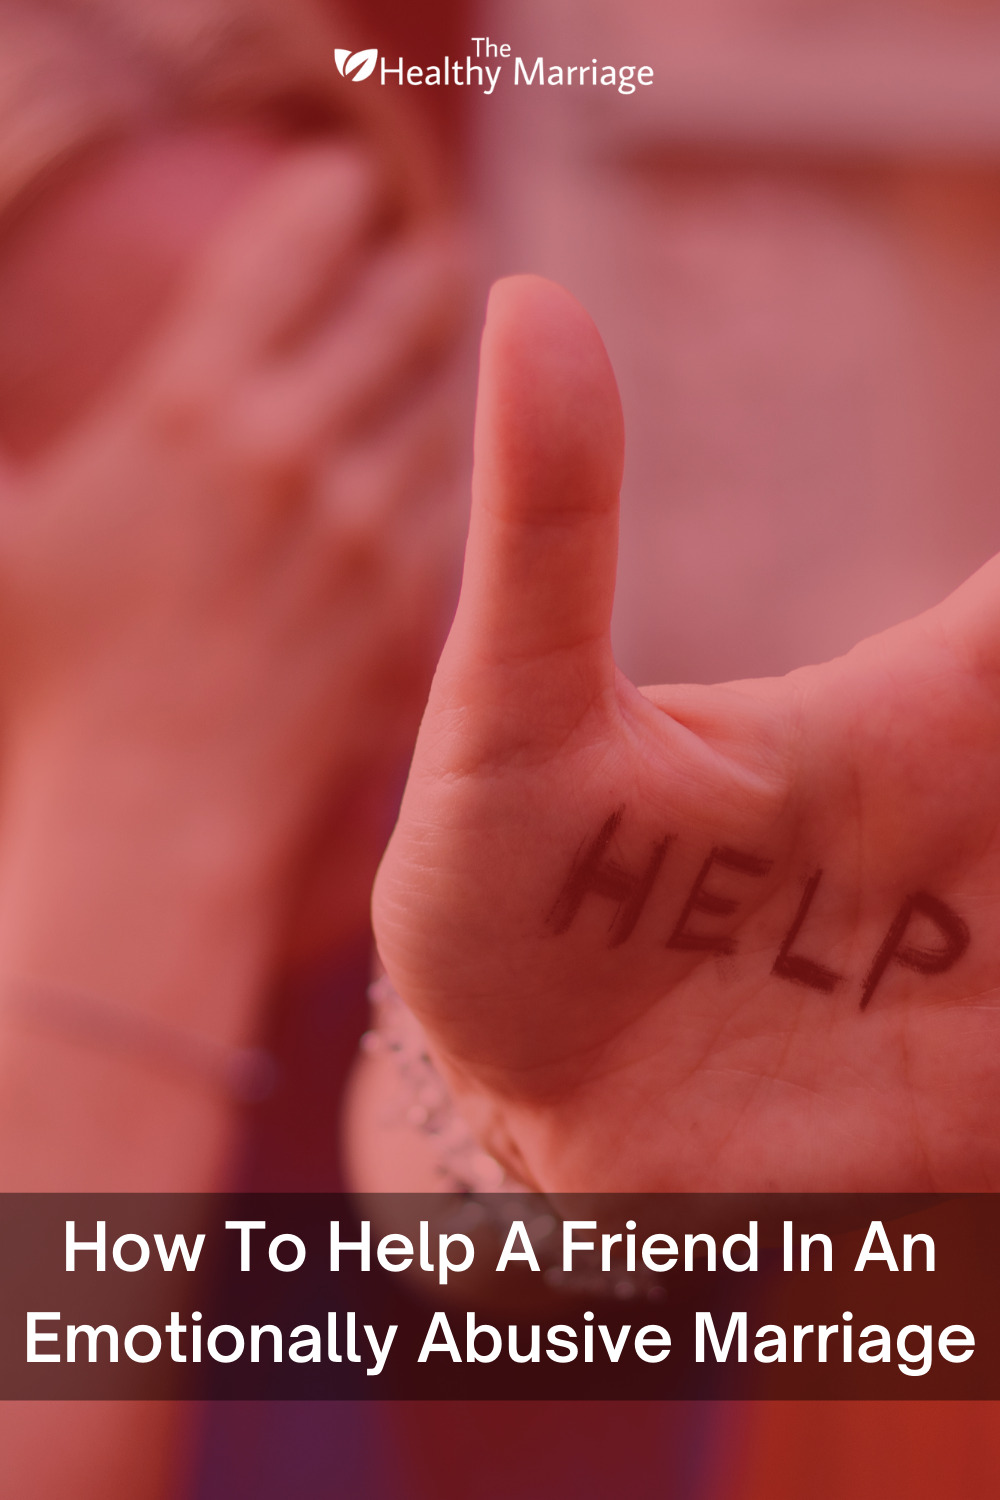 How To Help A Friend In An Emotionally Abusive Marriage Pinterest Pin